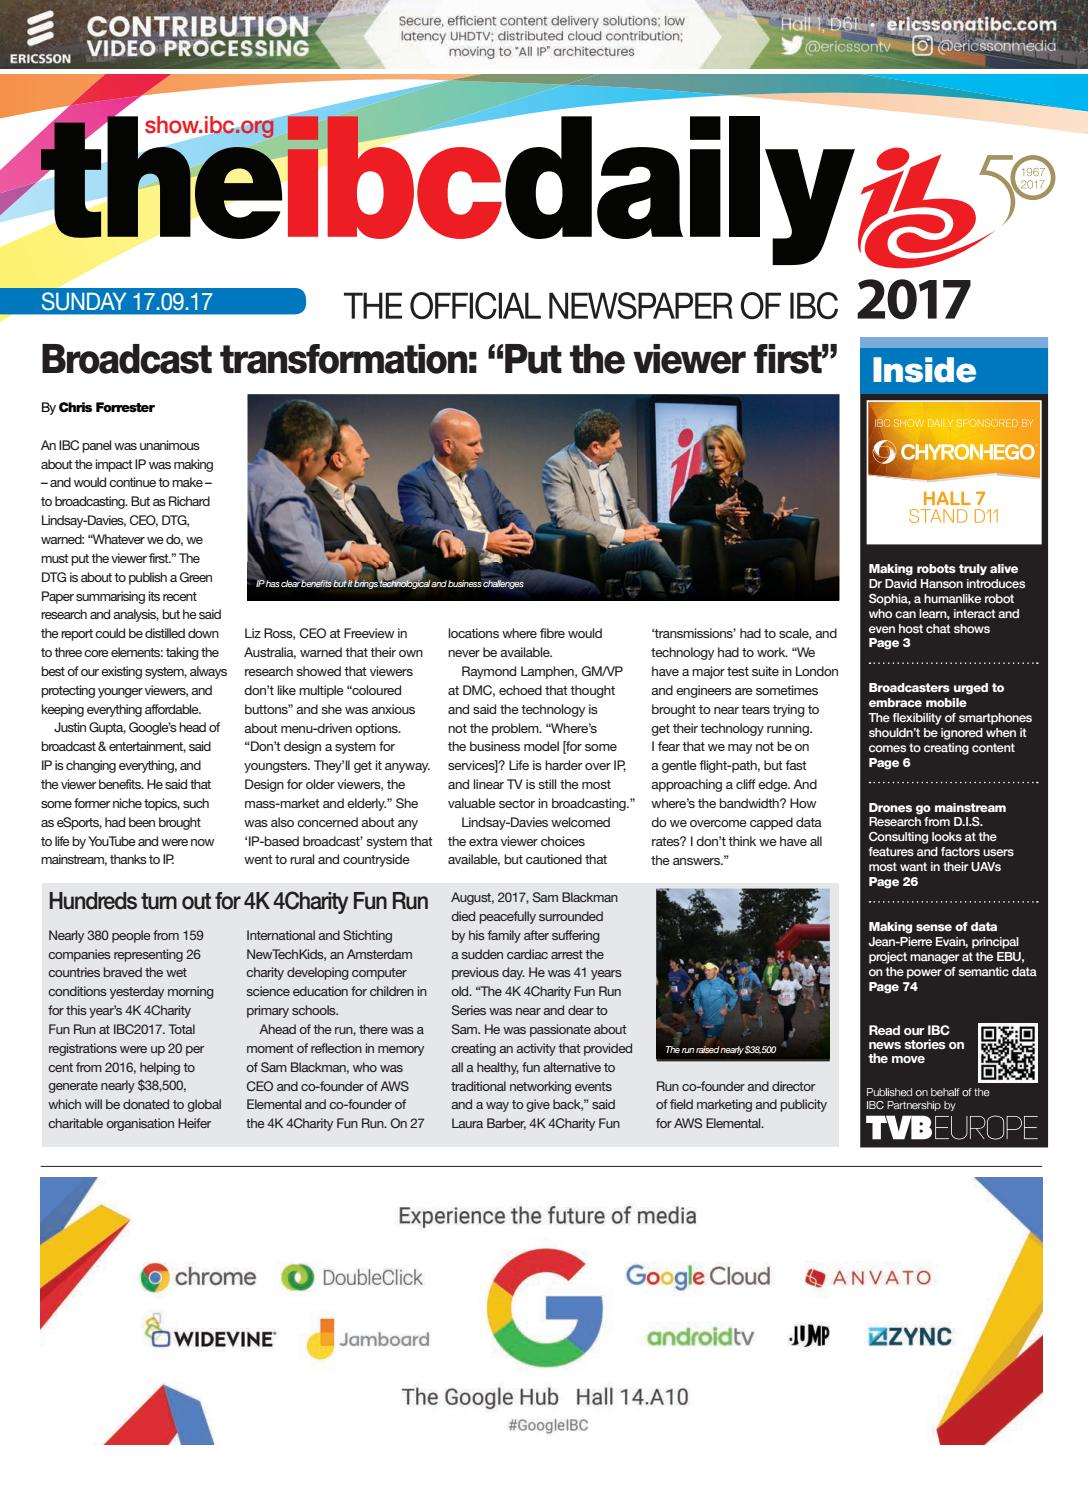 IBC2017 Daily D3 Sunday 17 September 2017 By Future PLC